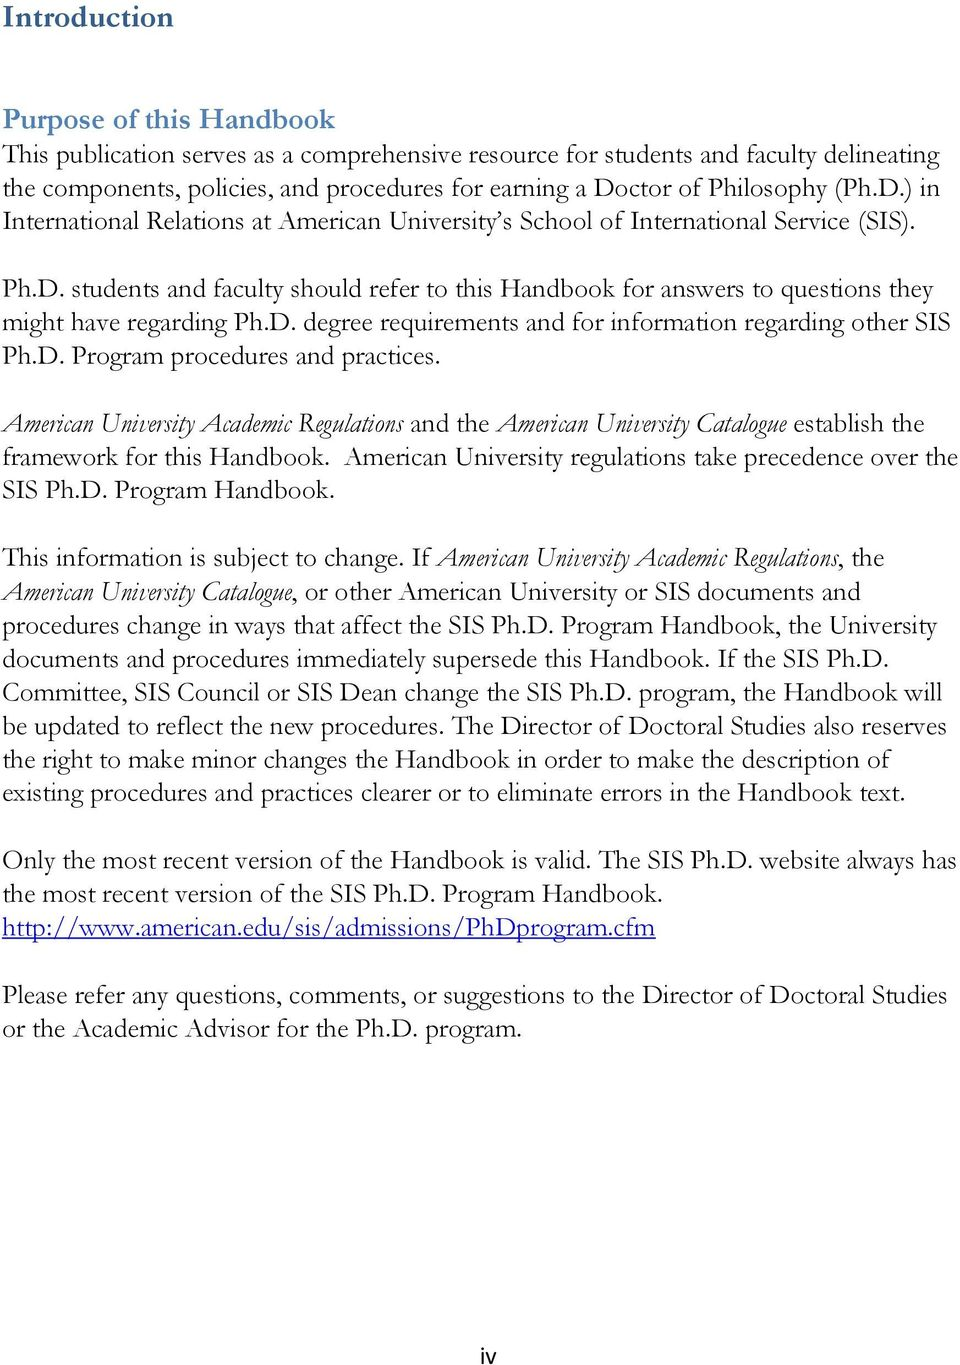 D. degree requirements and for information regarding other SIS Ph.D. Program procedures and practices.